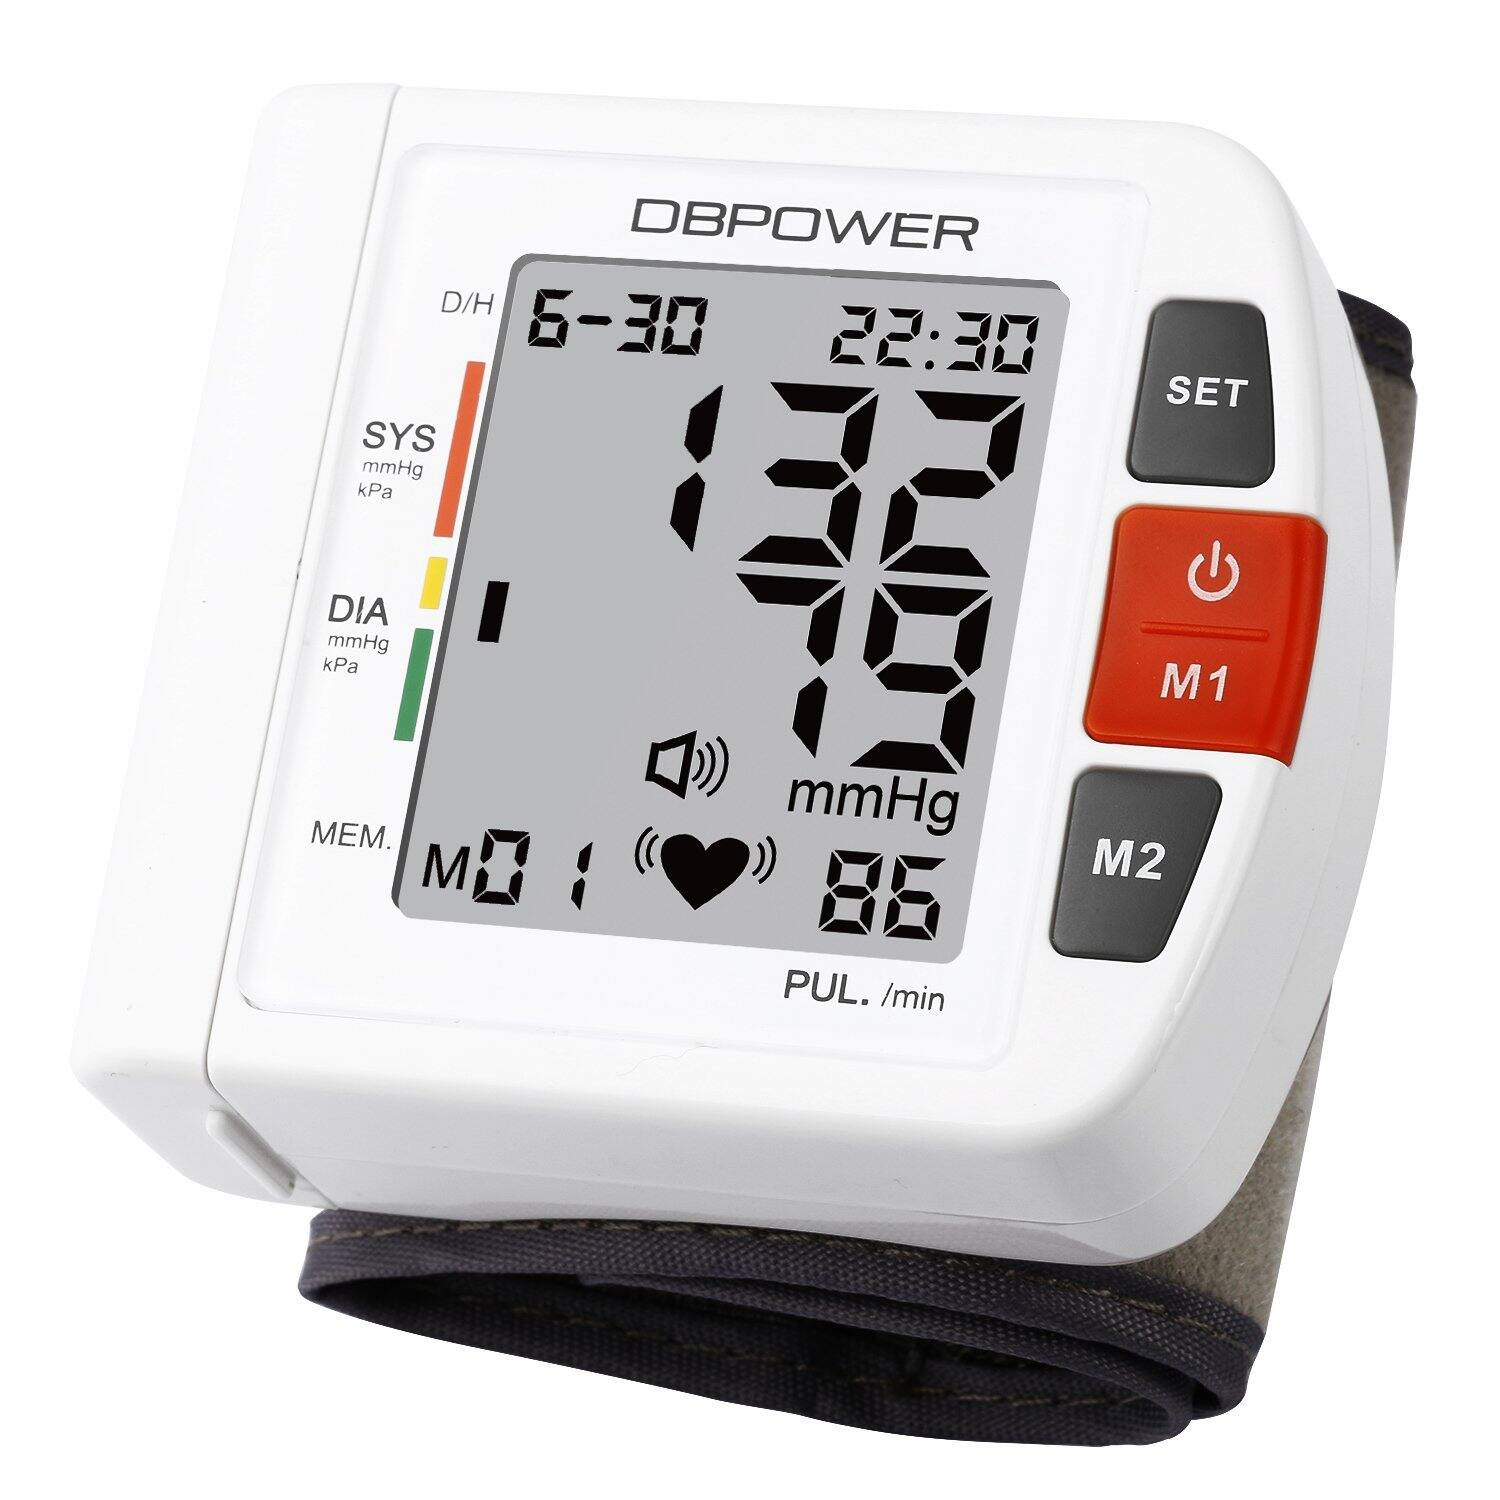 FDA Certified Wrist Digital Blood Pressure Monitor $16.49 + free Shipping with prime!